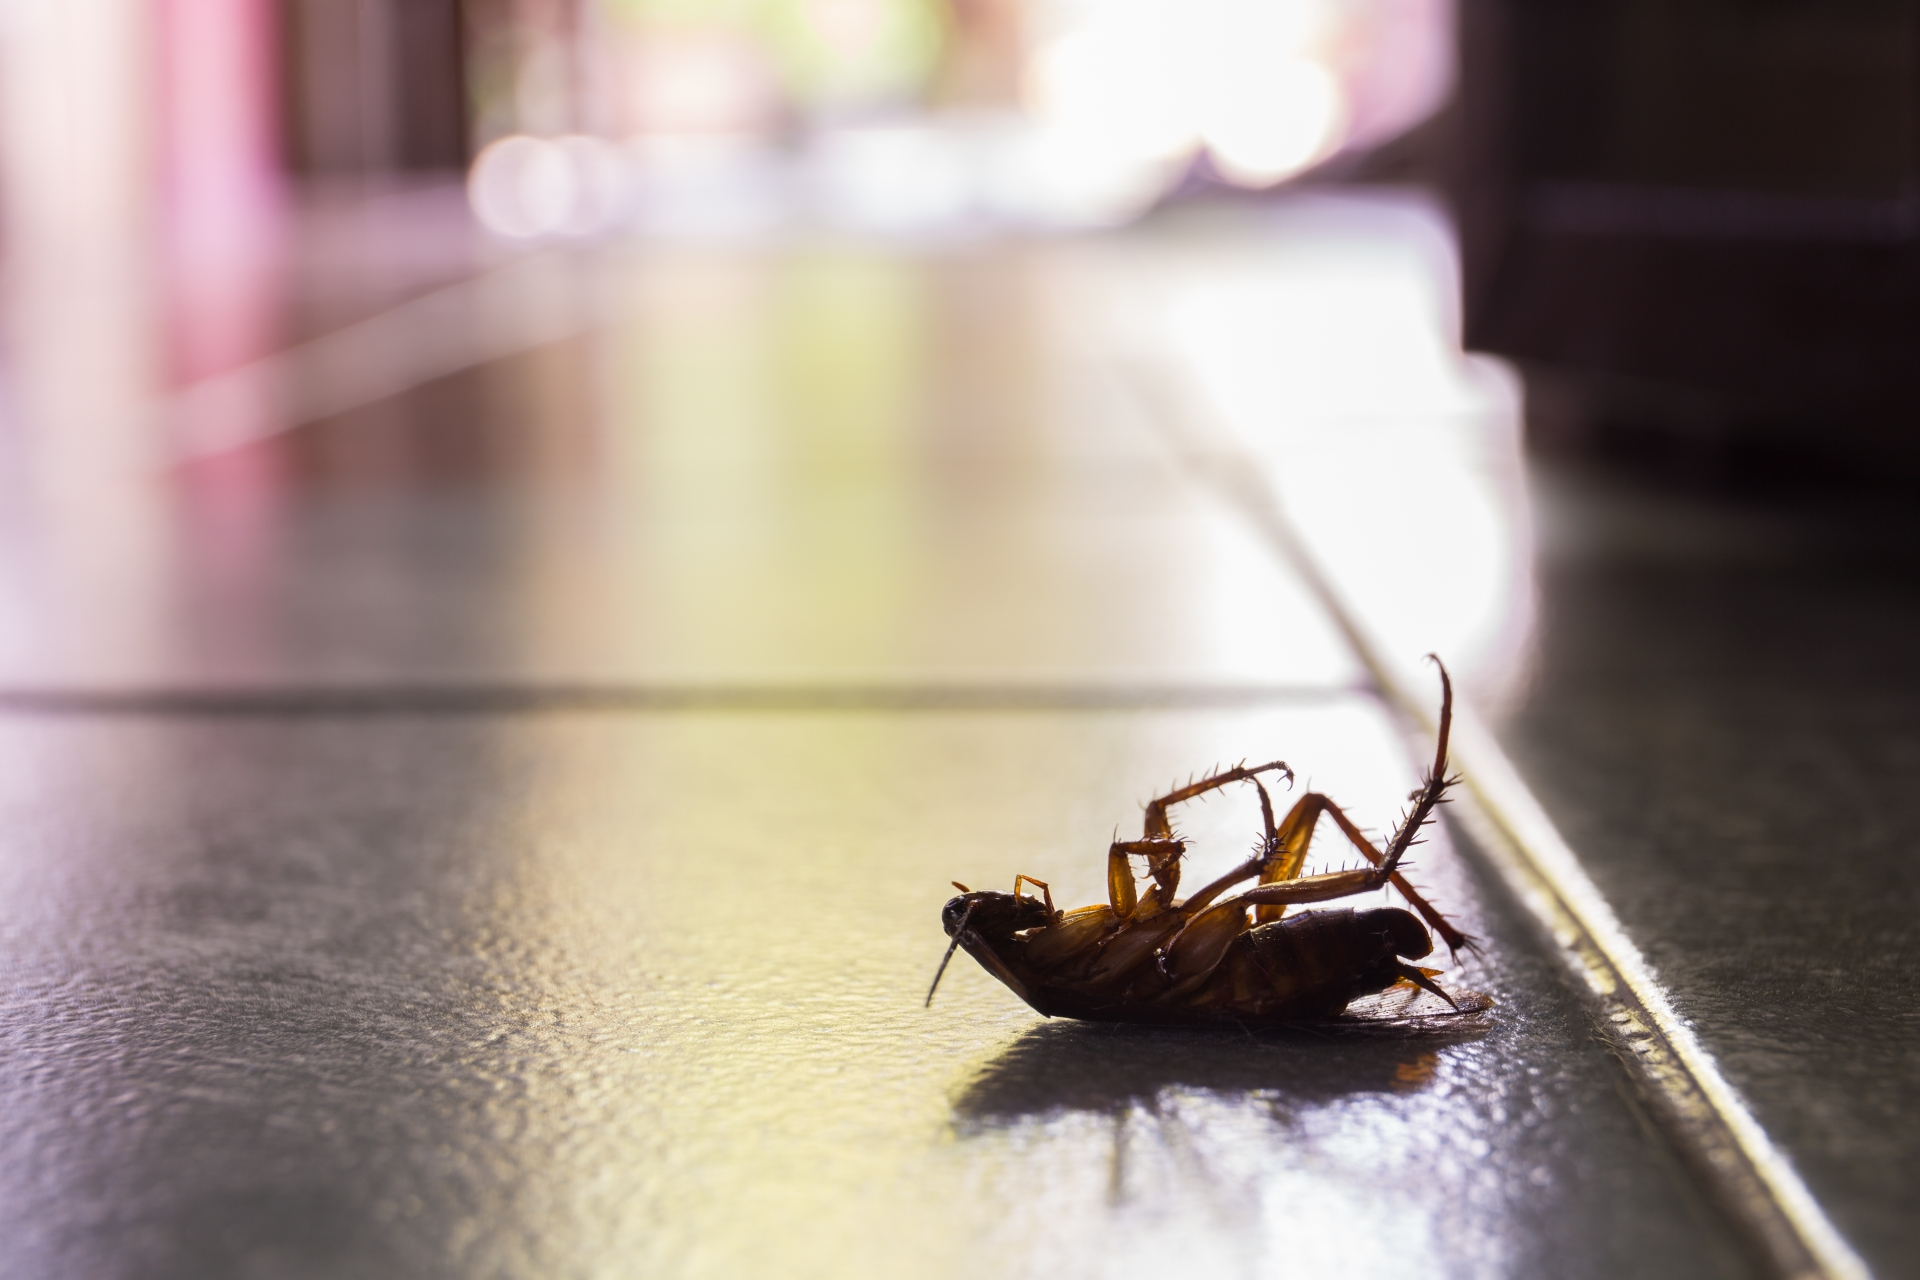 Cockroach Control, Pest Control in Strawberry Hill, Whitton, TW2. Call Now 020 8166 9746